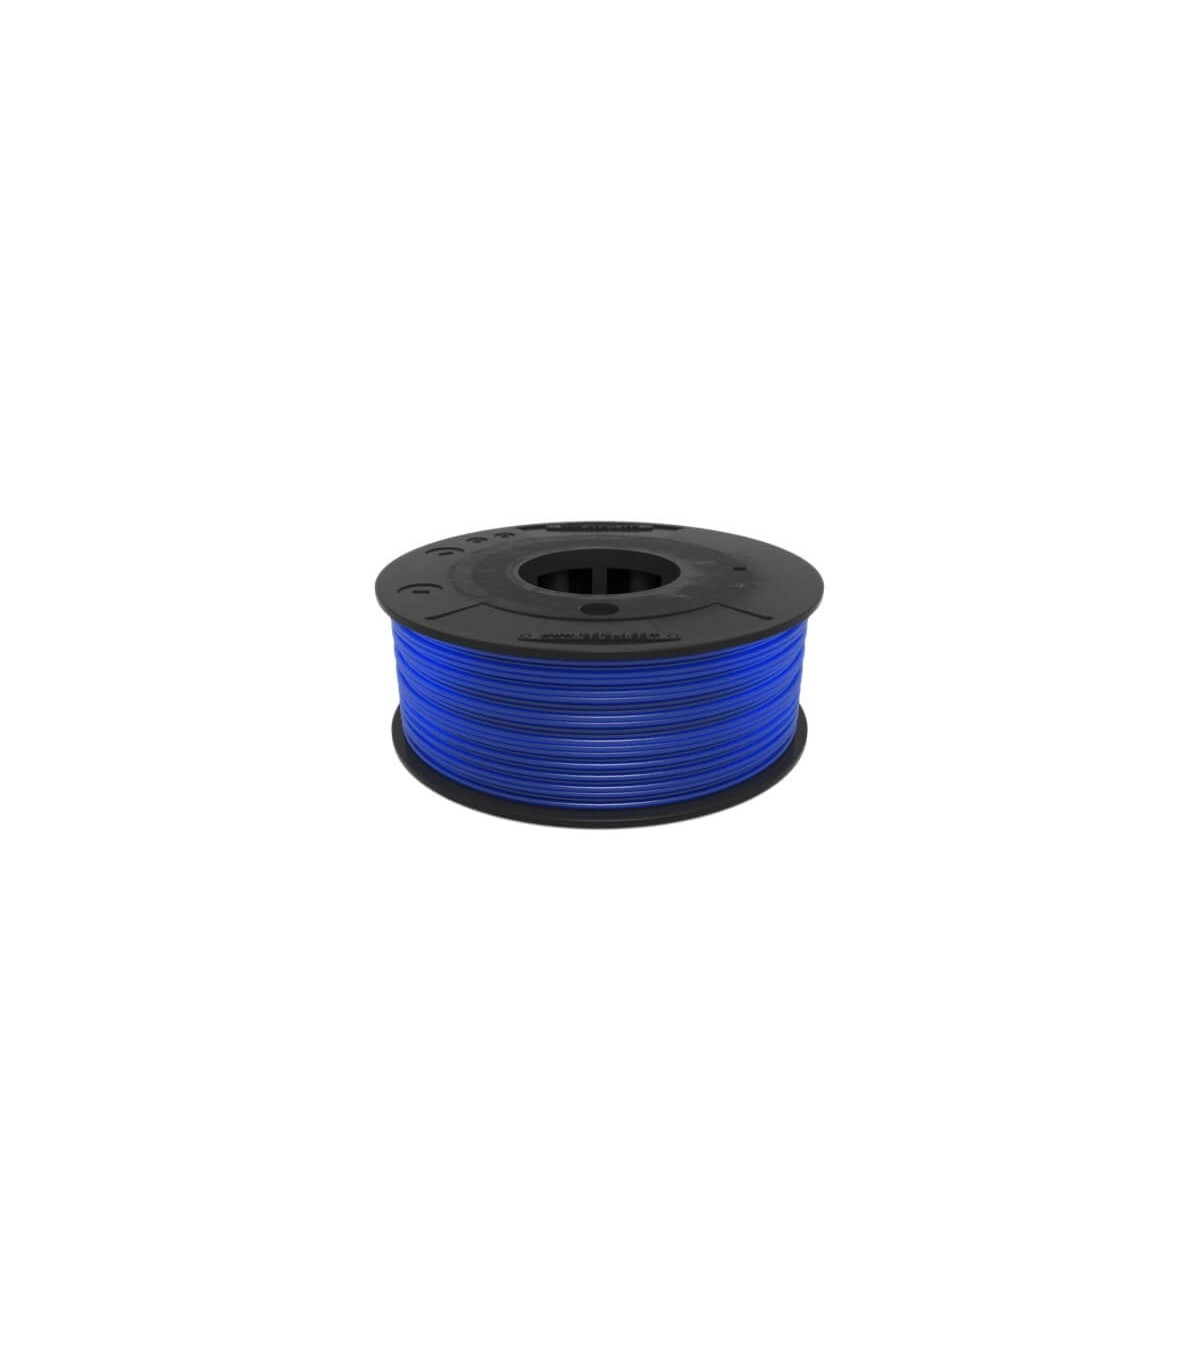 FilaFlex Clear blue 82A TPE Filament 2.85 mm 250g